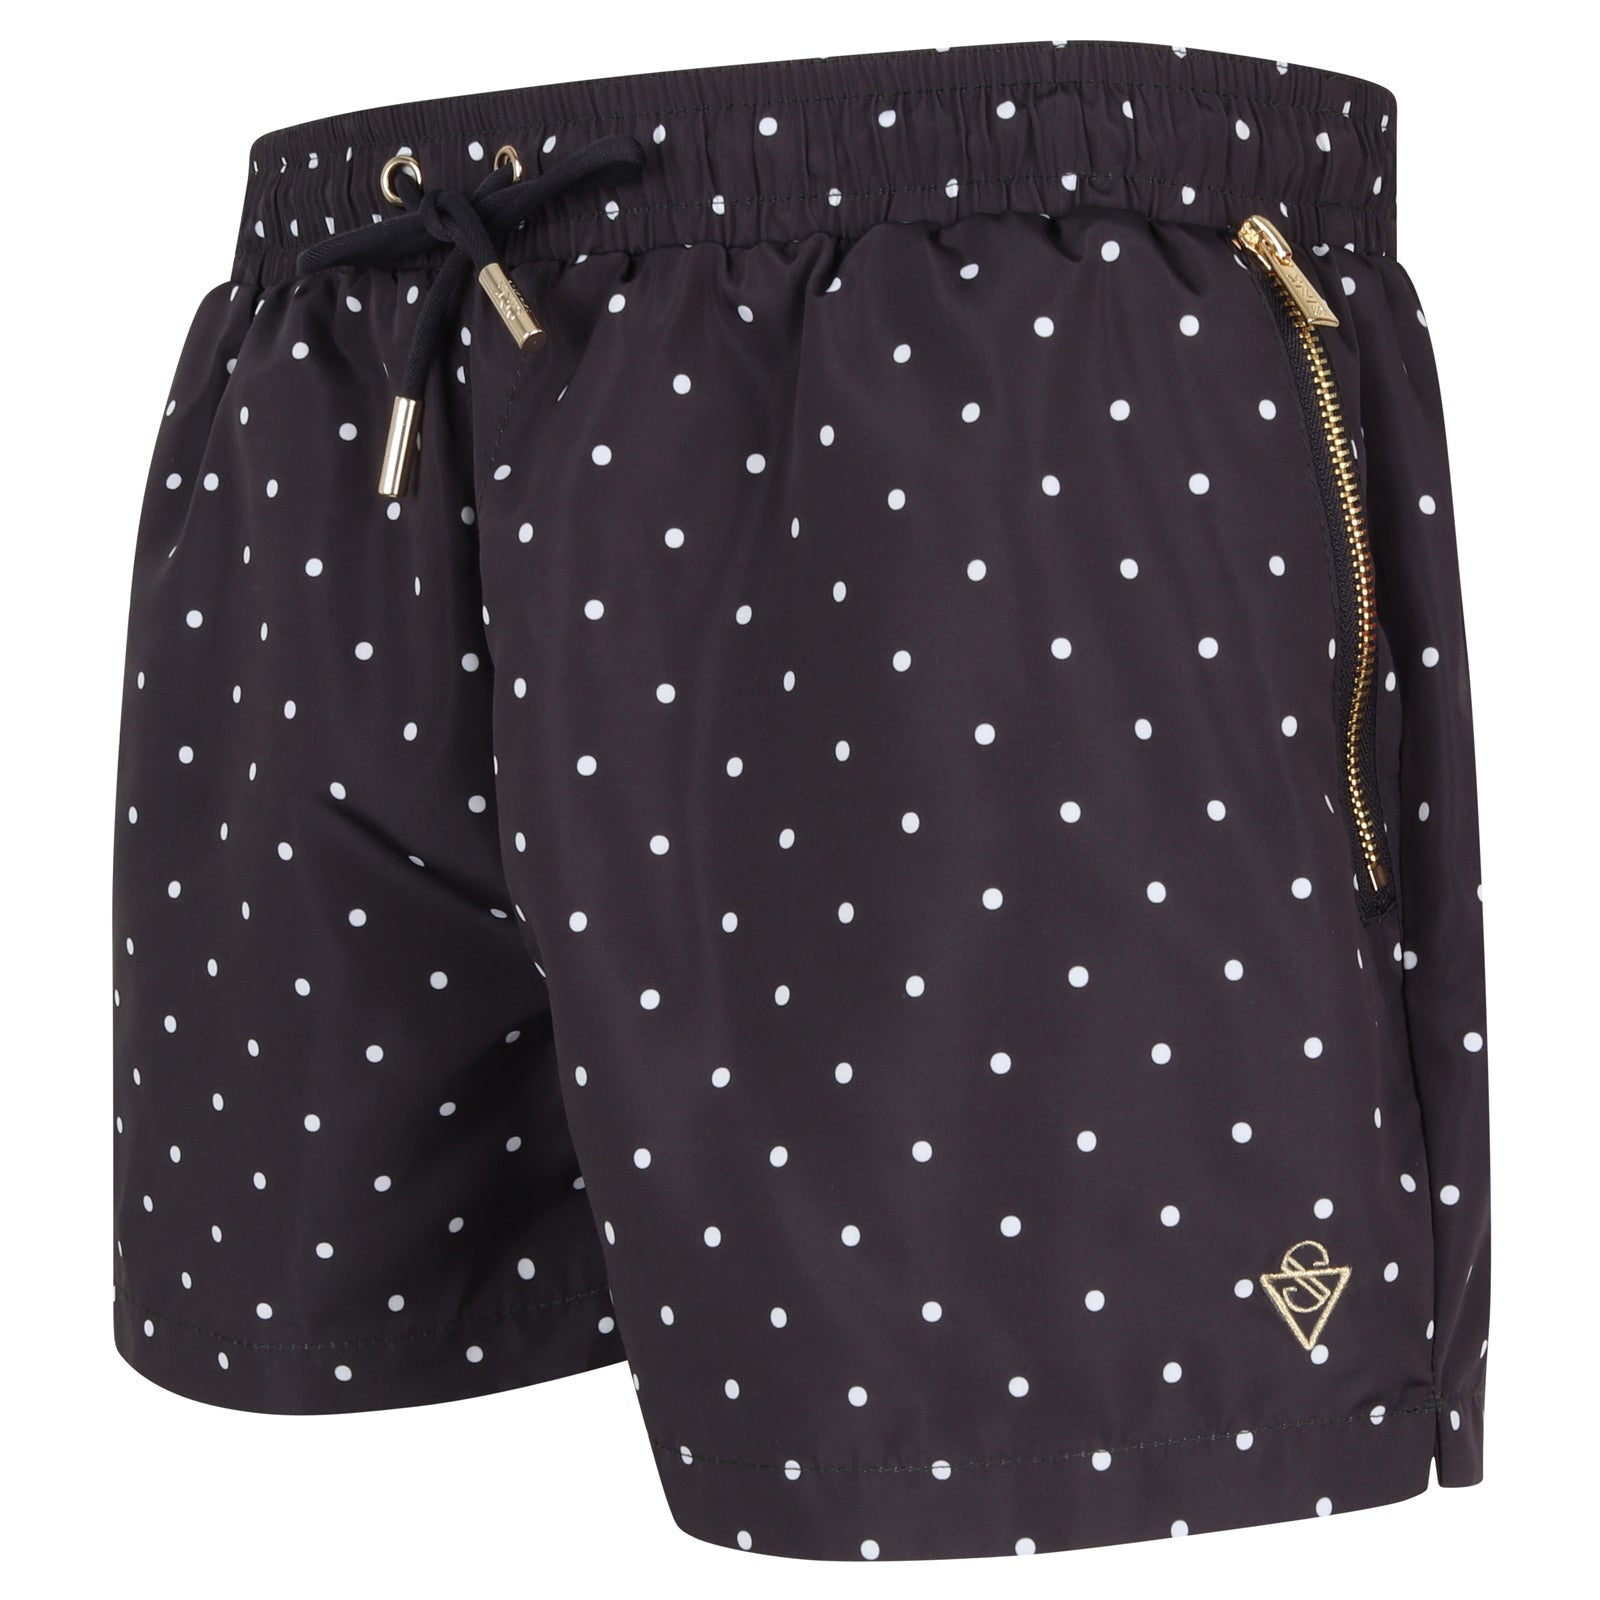 Signature Midnight Blue Polka Dot Swim Shorts with Gold Detailing